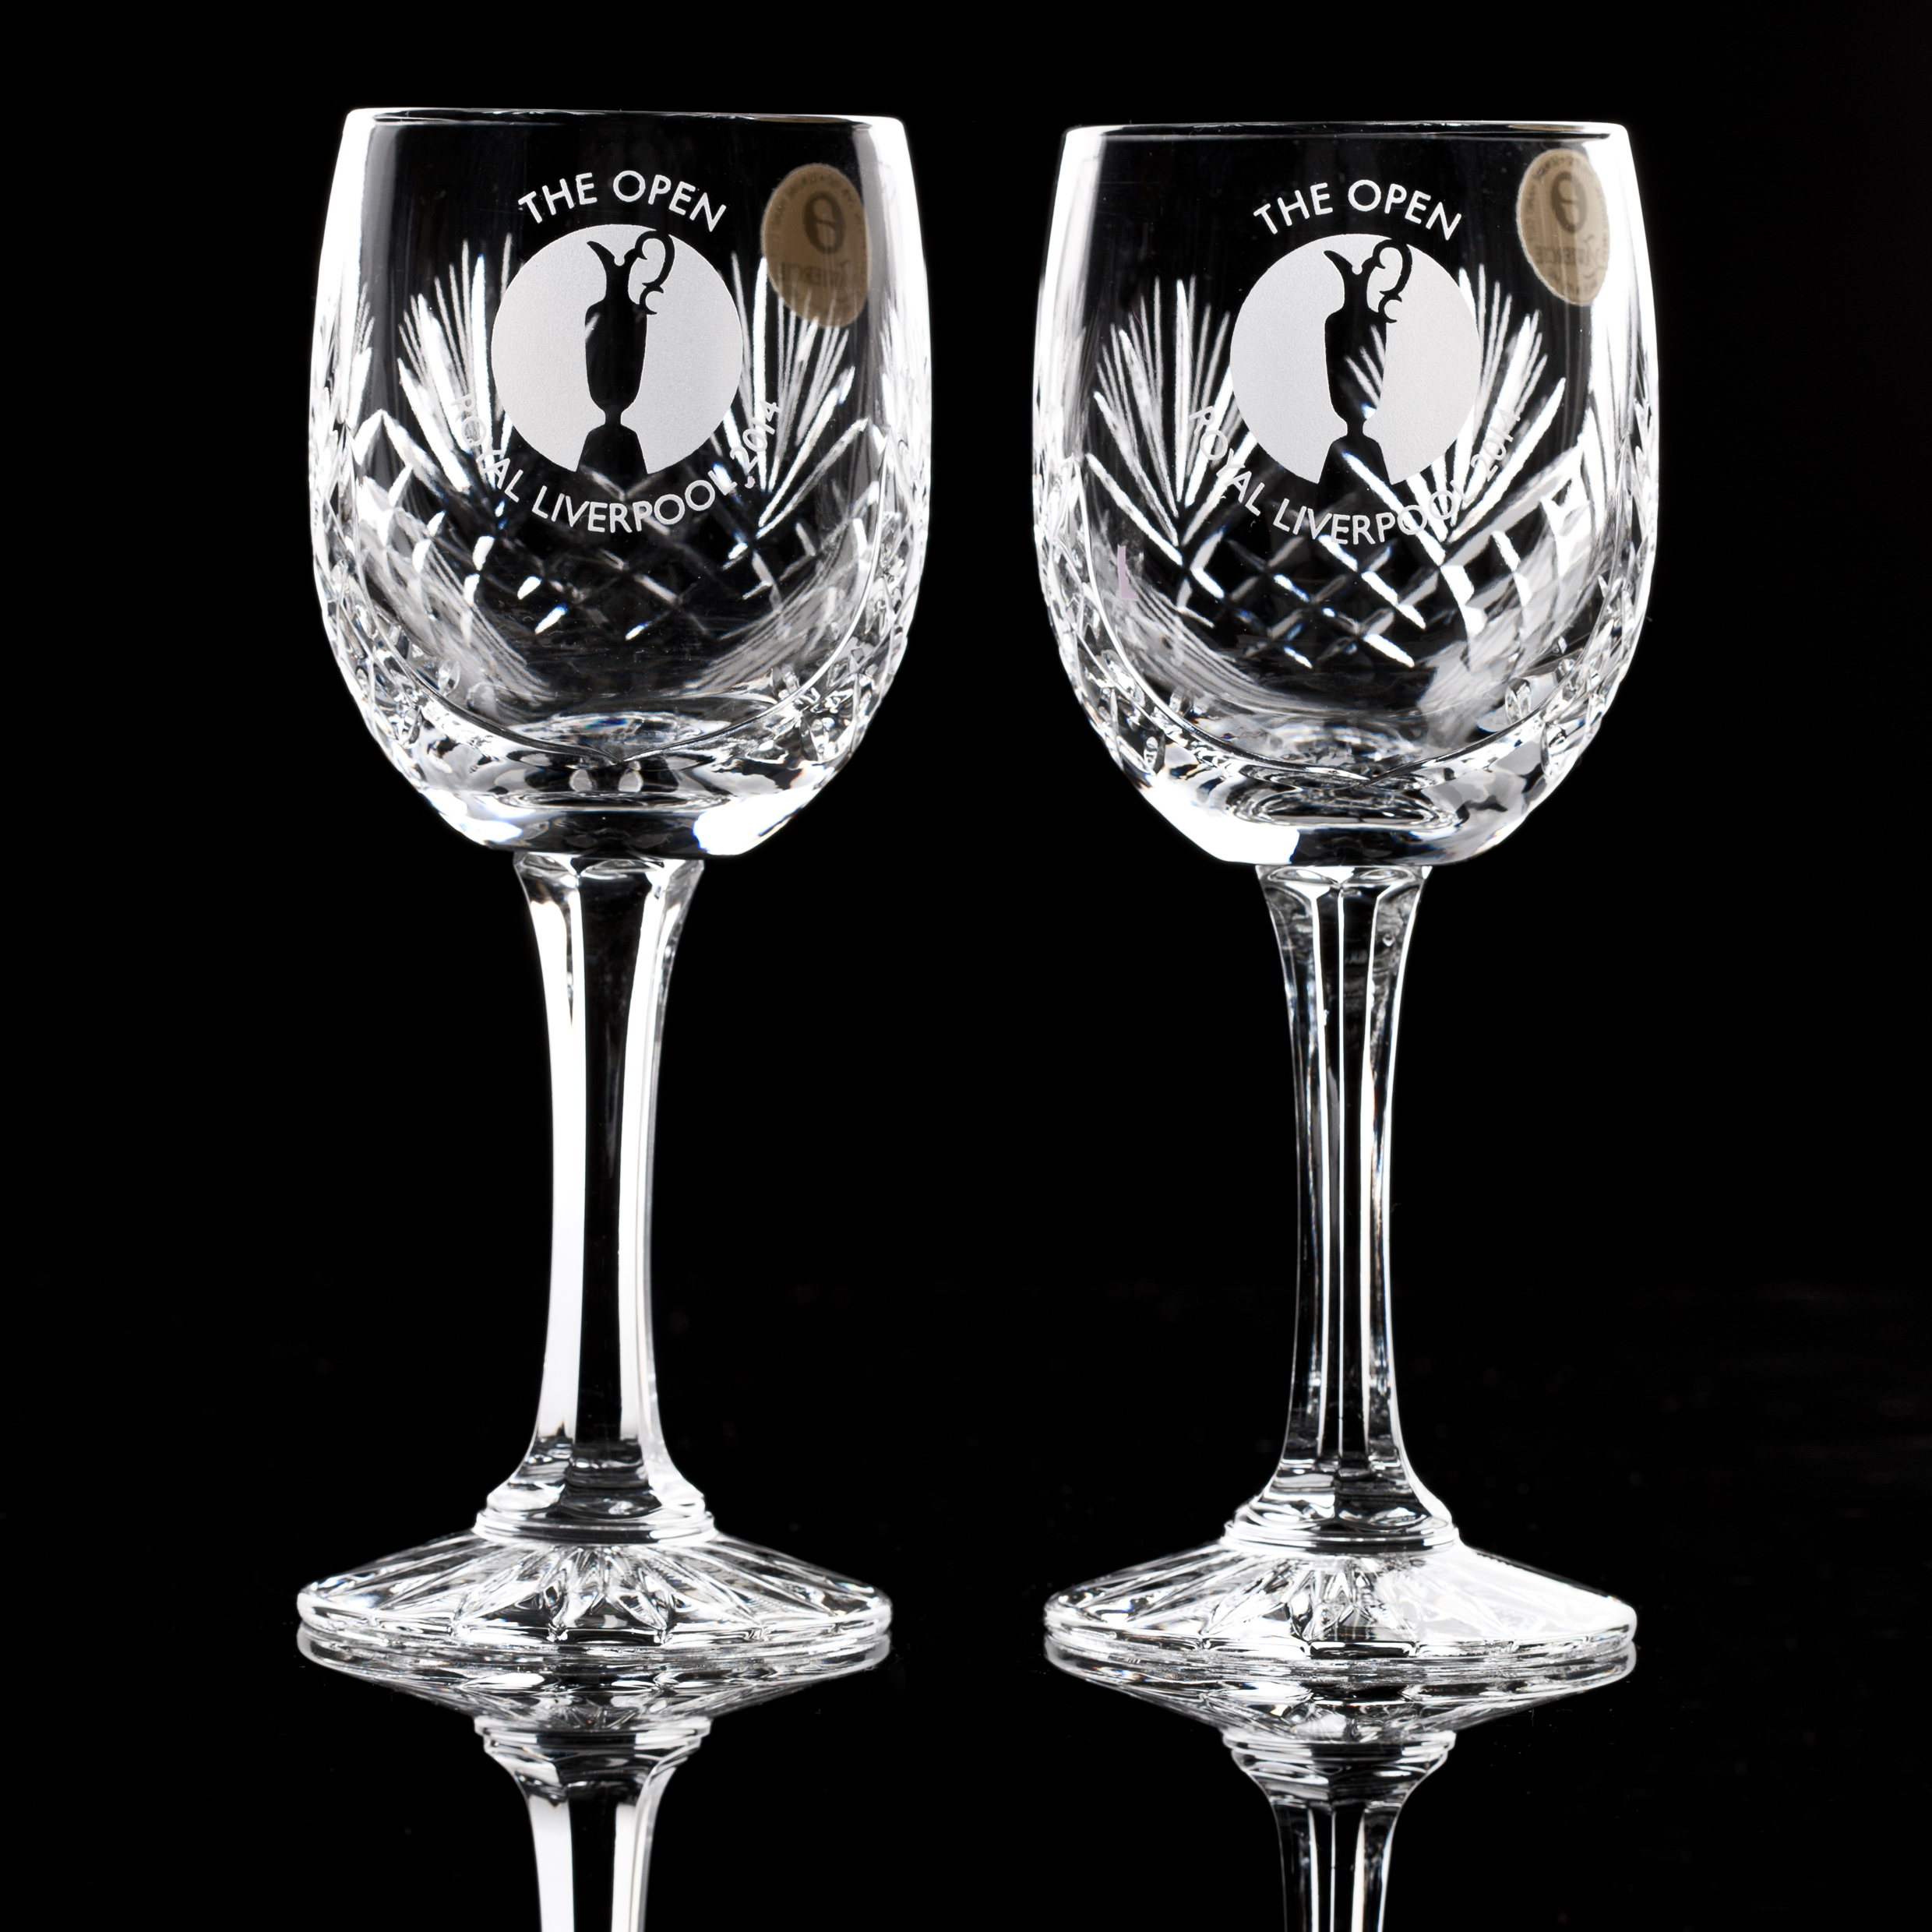 The Open Championship Royal Liverpool 2014 Durham Small Wine Glass - Pair